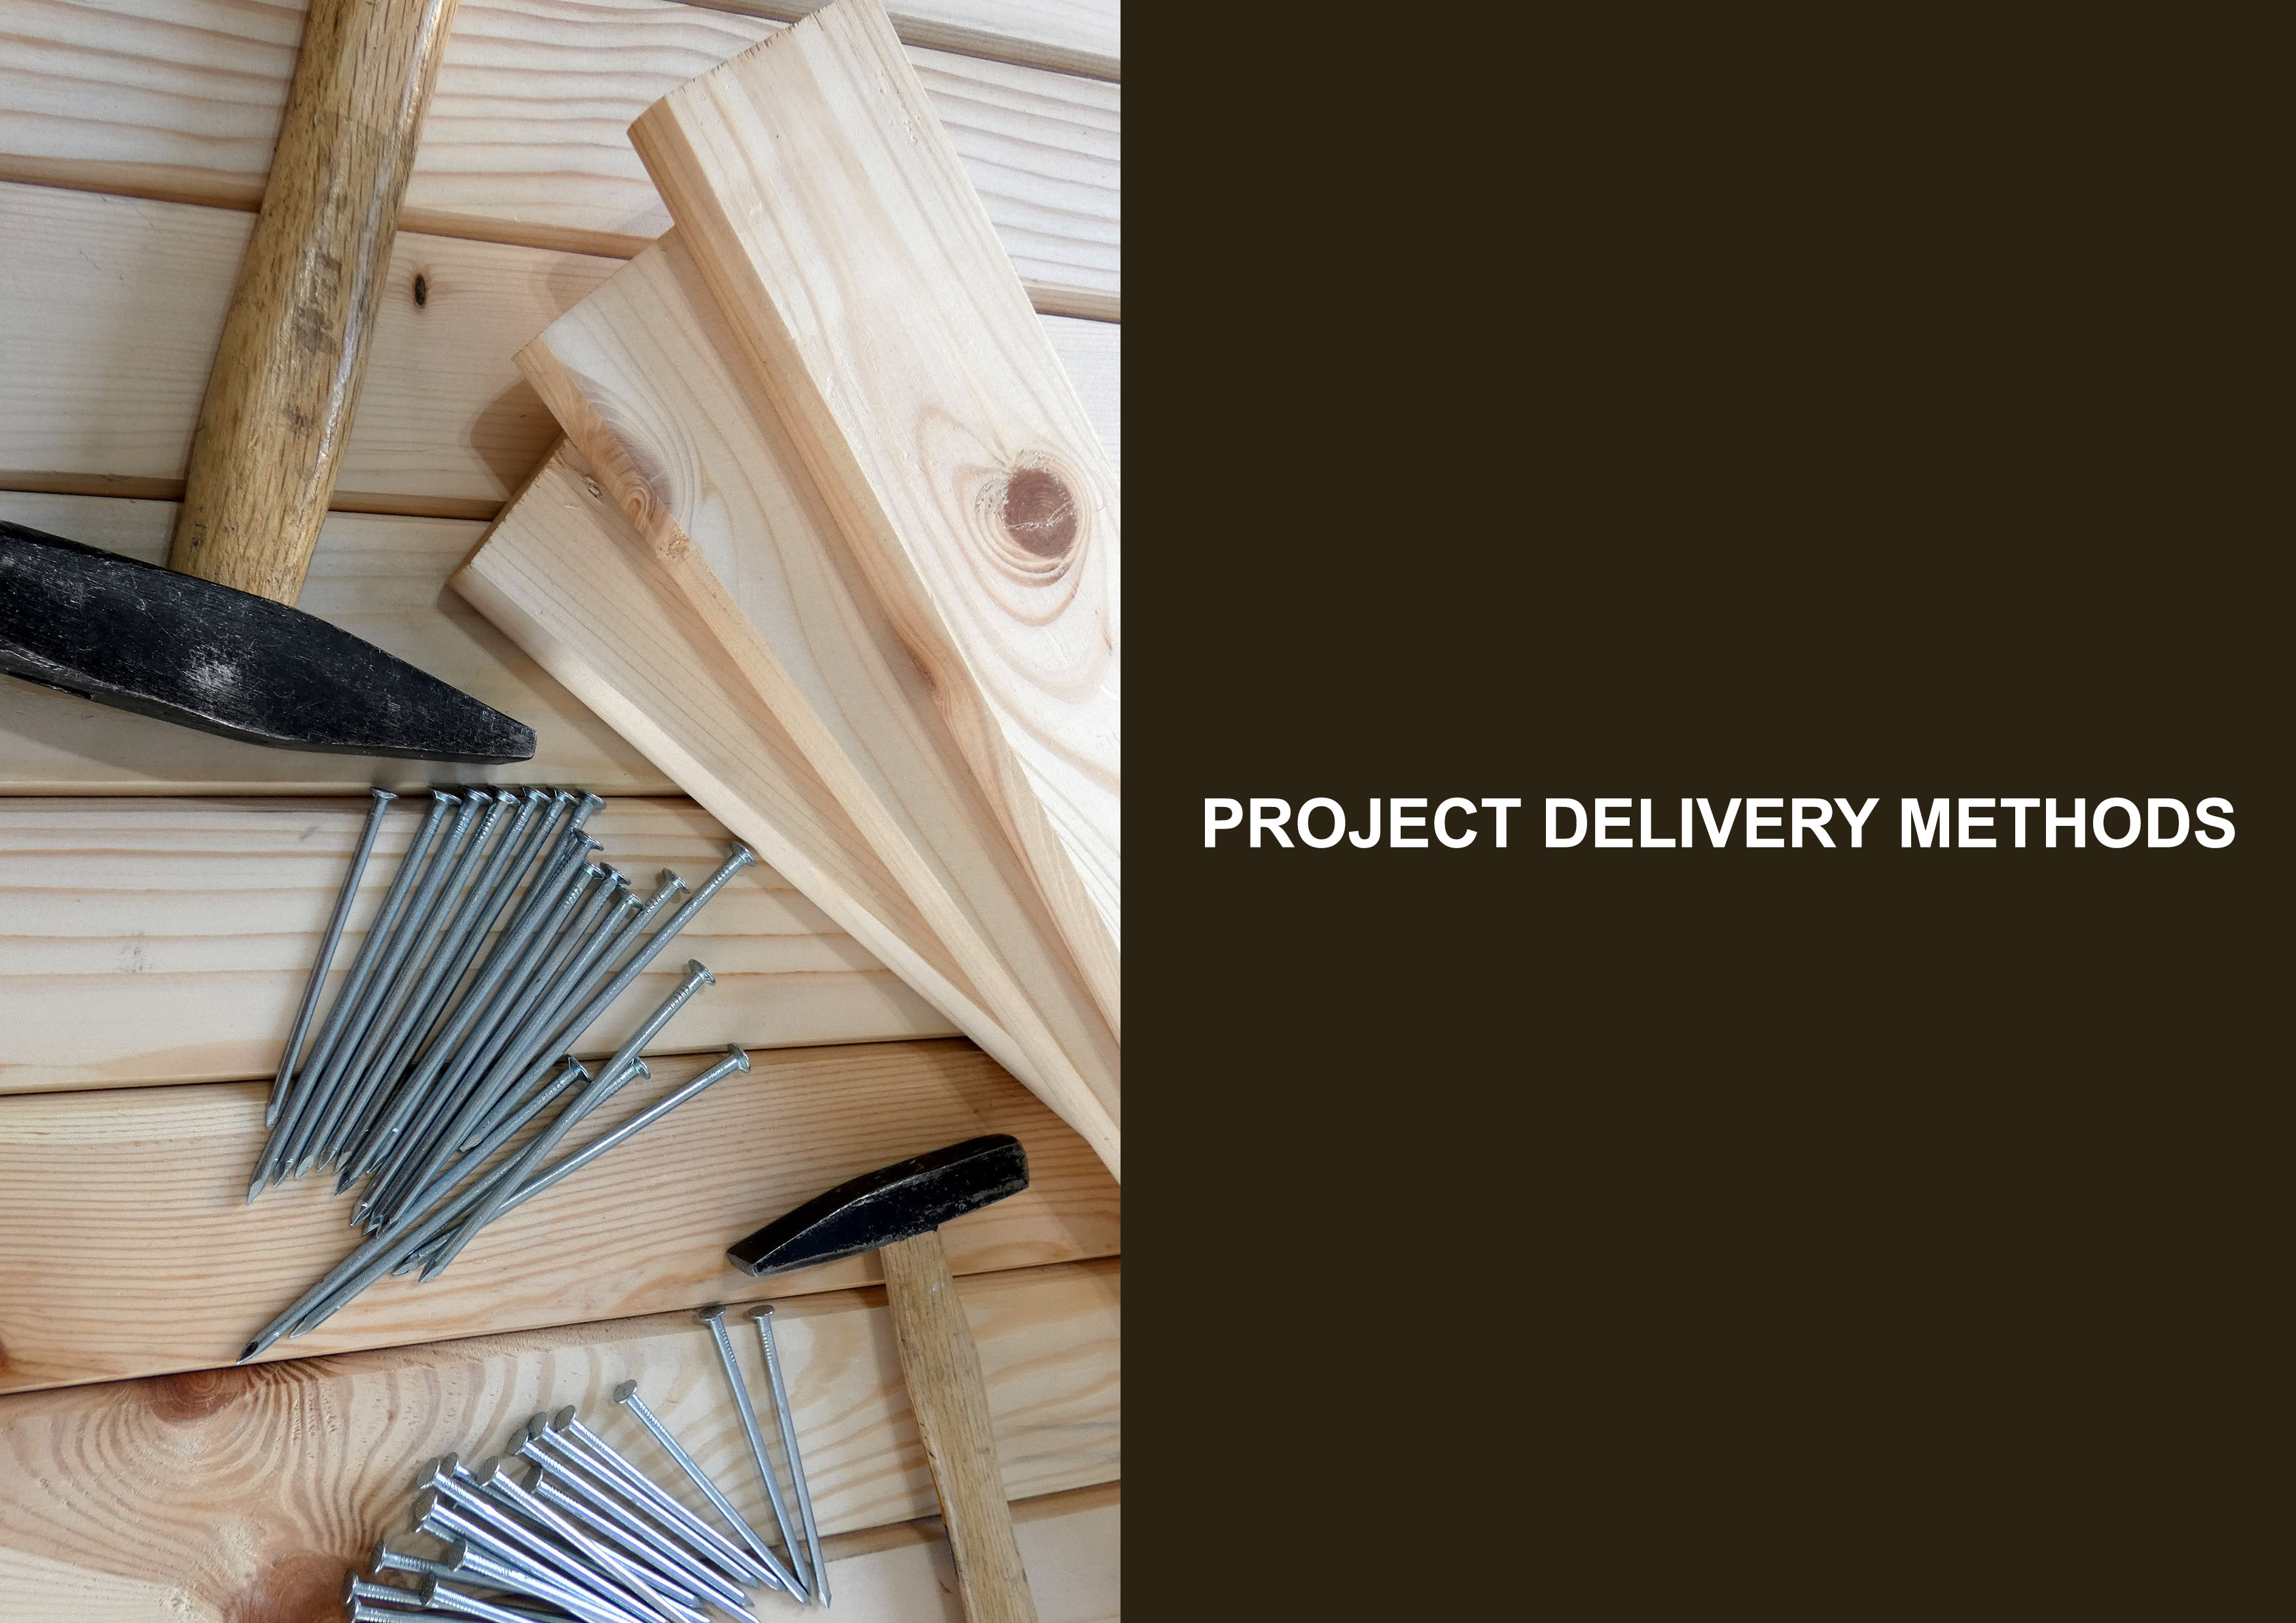 Project delivery methods